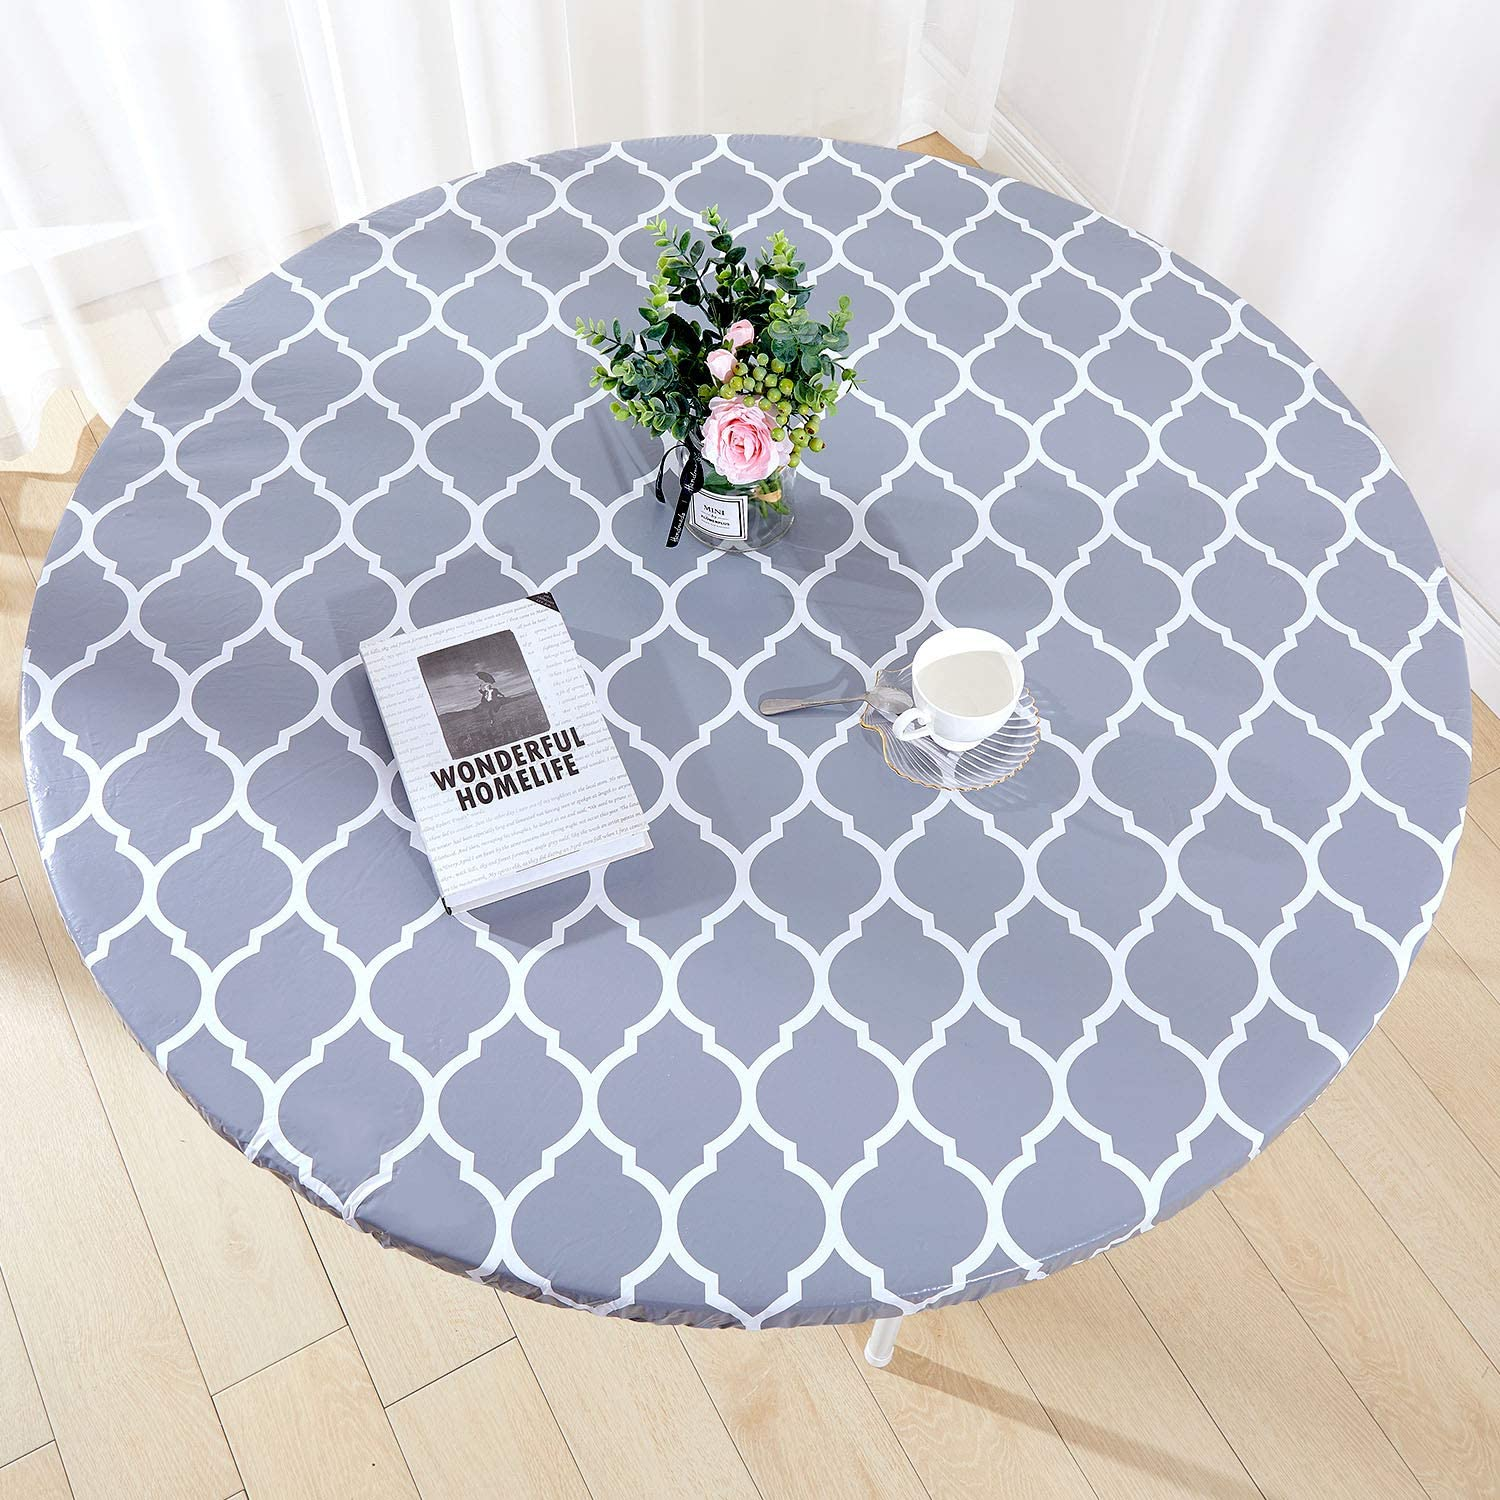 "Zhuqing Heavy Duty Vinyl Round Fitted Tablecloth, Gray Moroccan Design, Spillproof Waterproof Elastic Table Cover with Flannel Backed Lining, Fits 45"" to 56"" Round Table, for Indoor/Outdoor Use"